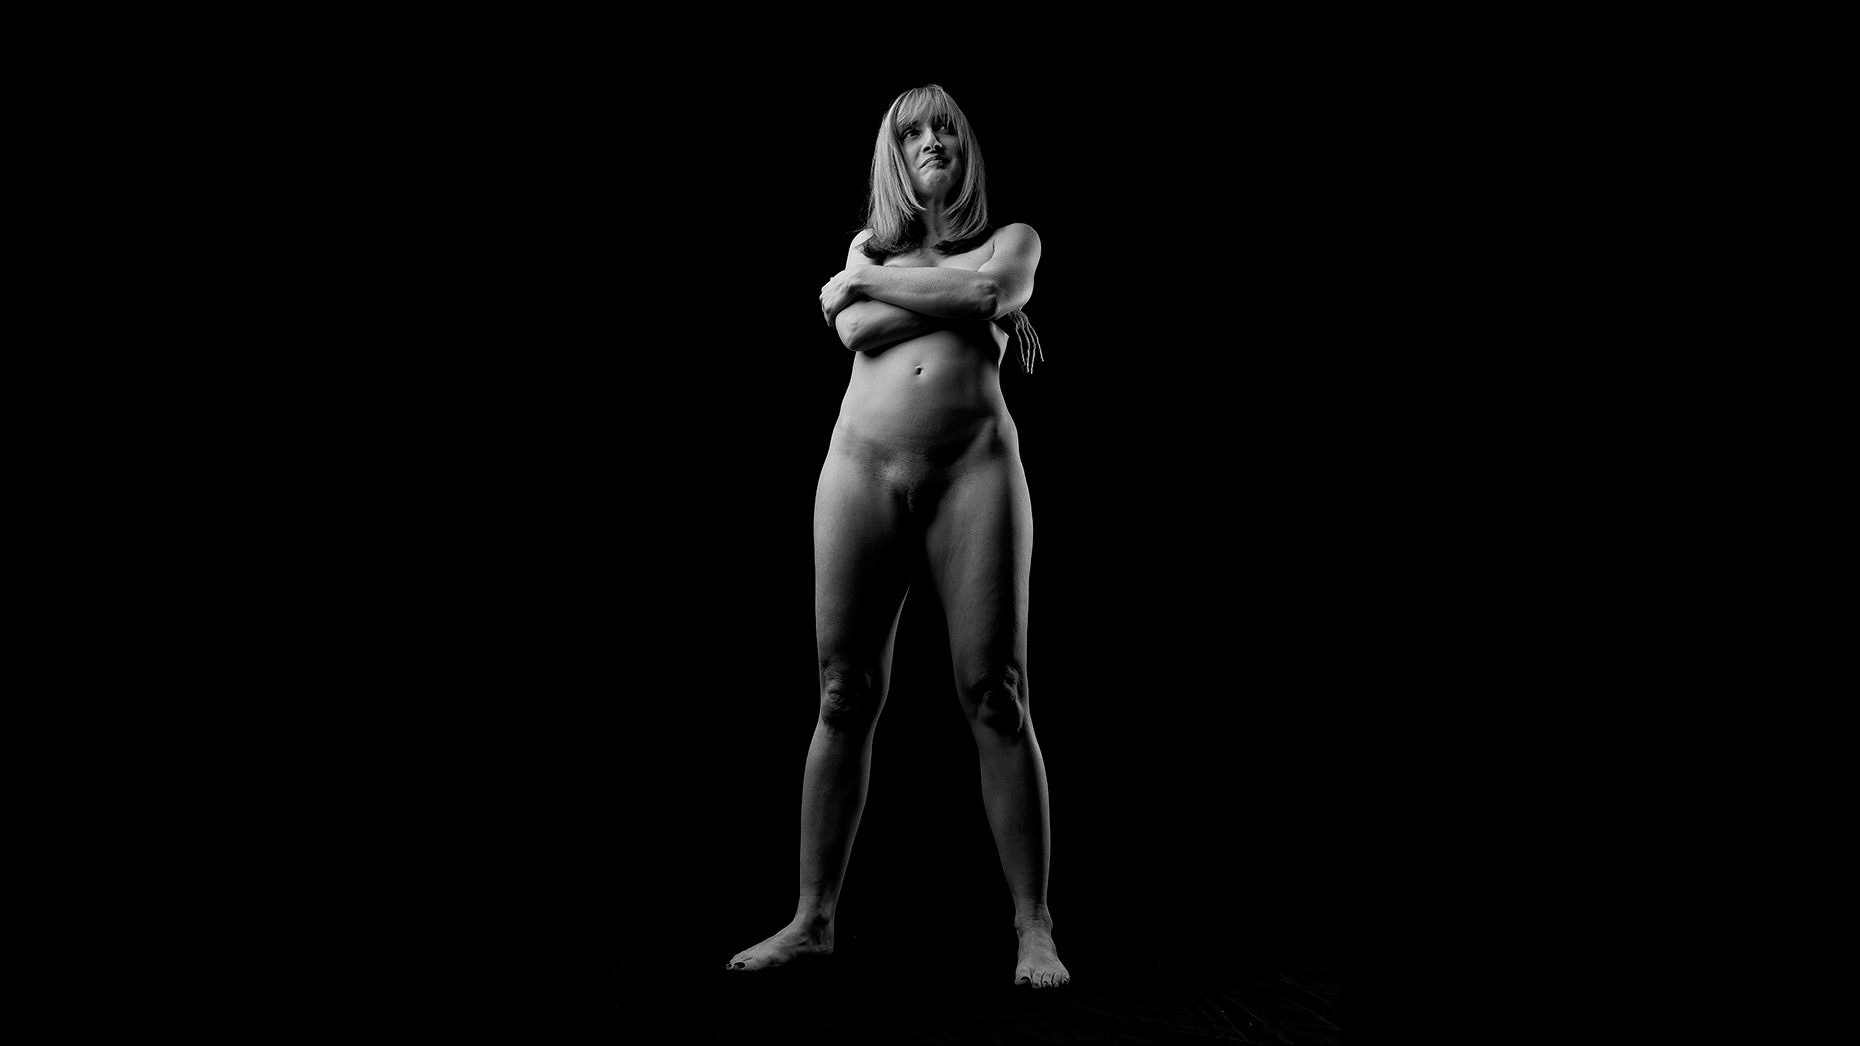 XF-Vessel-Series-Photographed-by-Joe-Henson-Best-Fine-Art-Photographer-NYC-New-York-NY-Black-and-White-Nudes-Nude-Photography-2